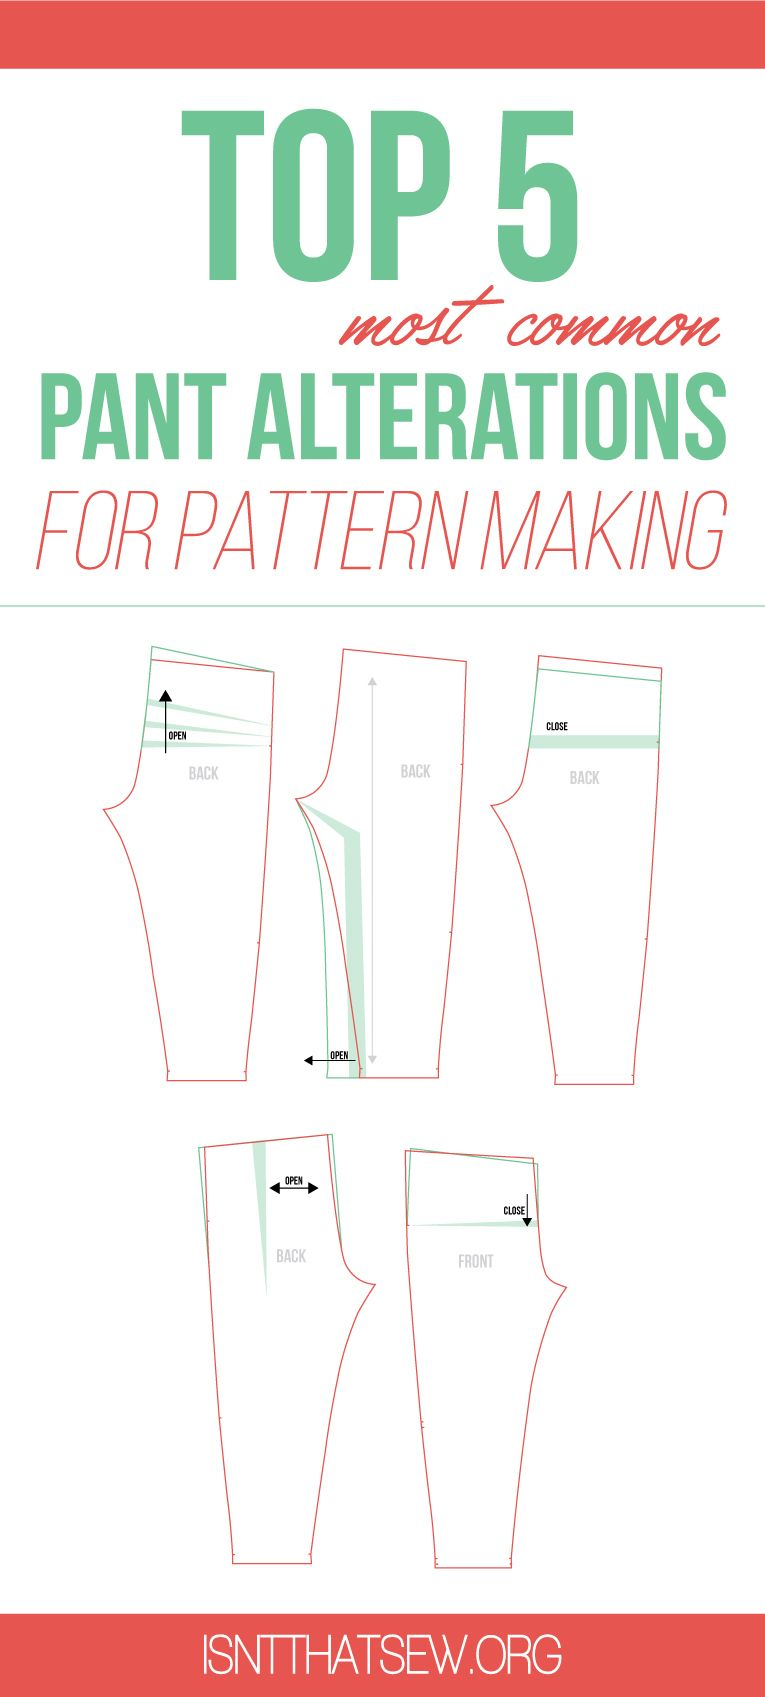 The top 5 most common pant alterations | Pinterest | Patterns ...